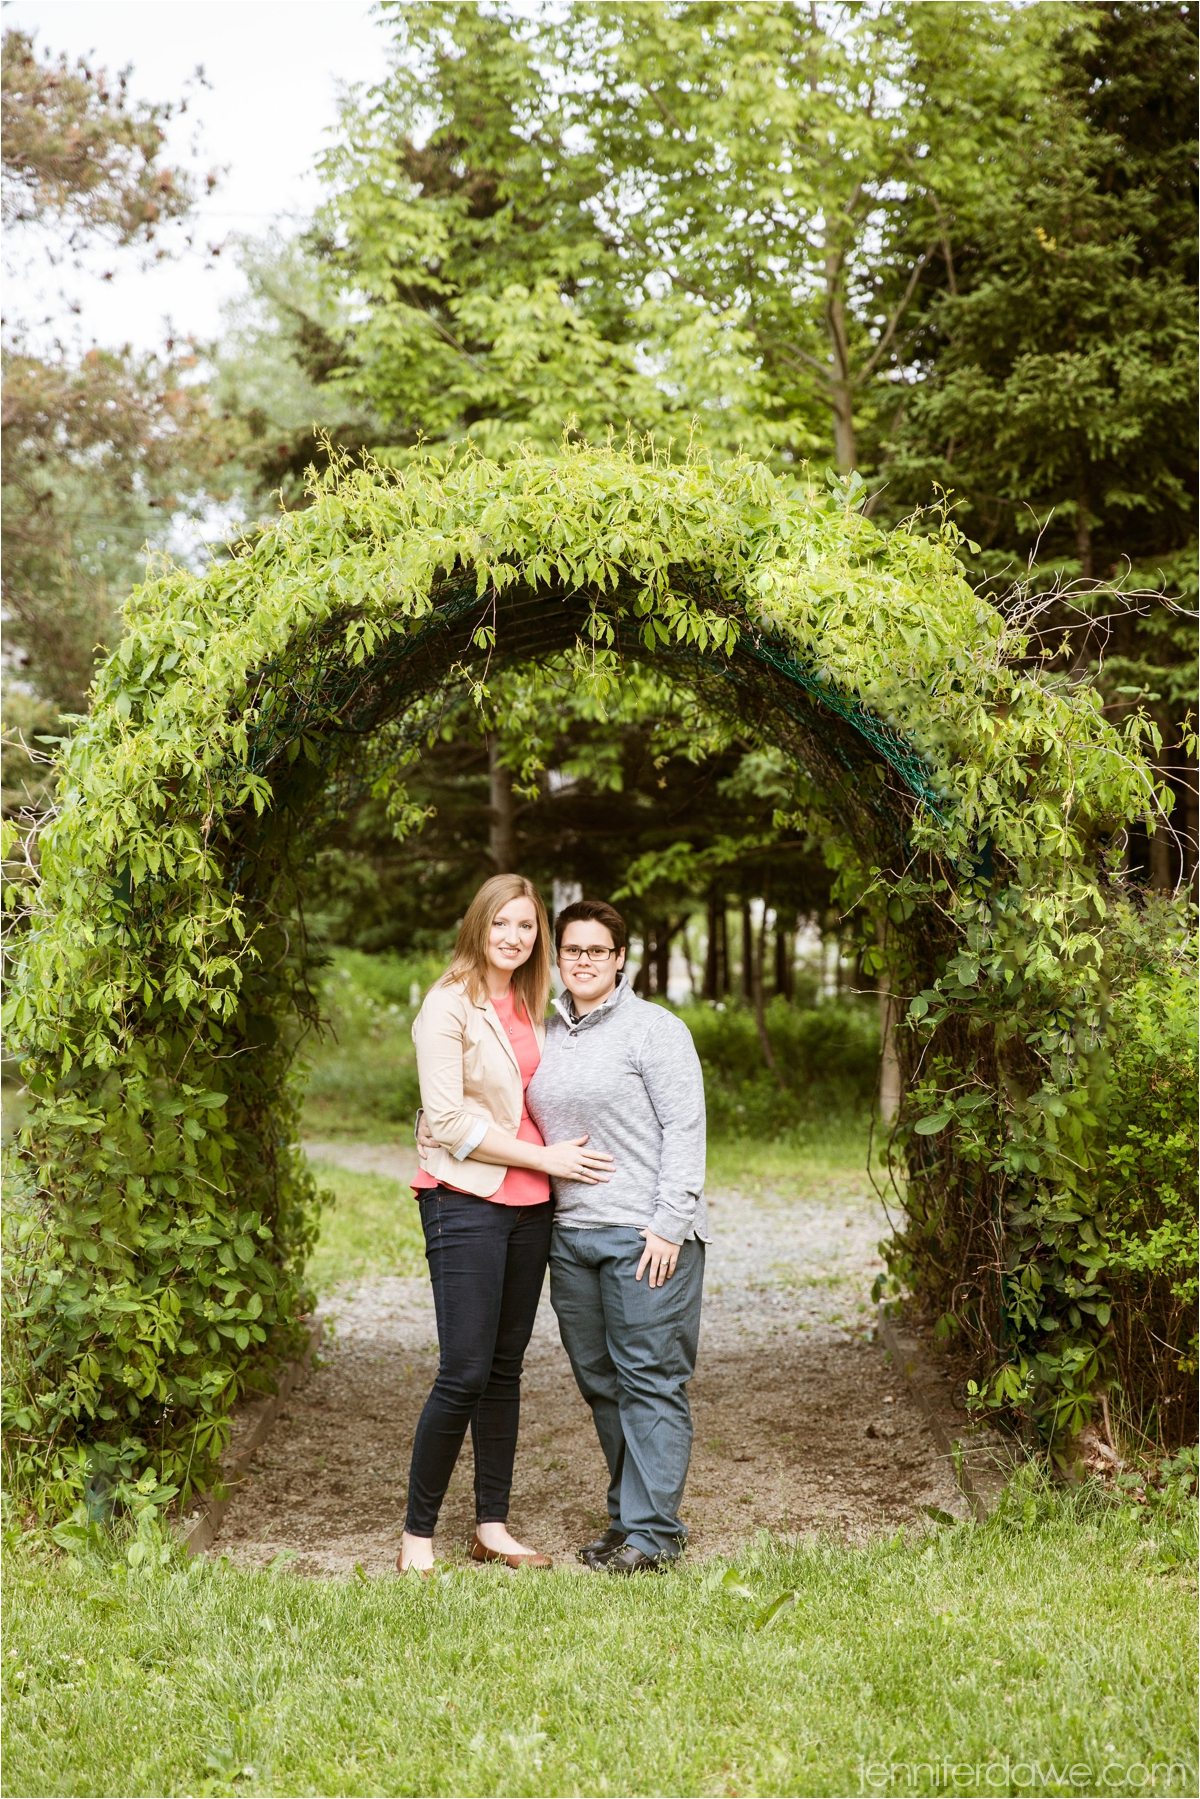 Jennifer Dawe Photography Newfoundland Wedding Photographers Best Newfoundland Photographer St John's NL Wedding Yellowbelly Brewery Wedding_3608